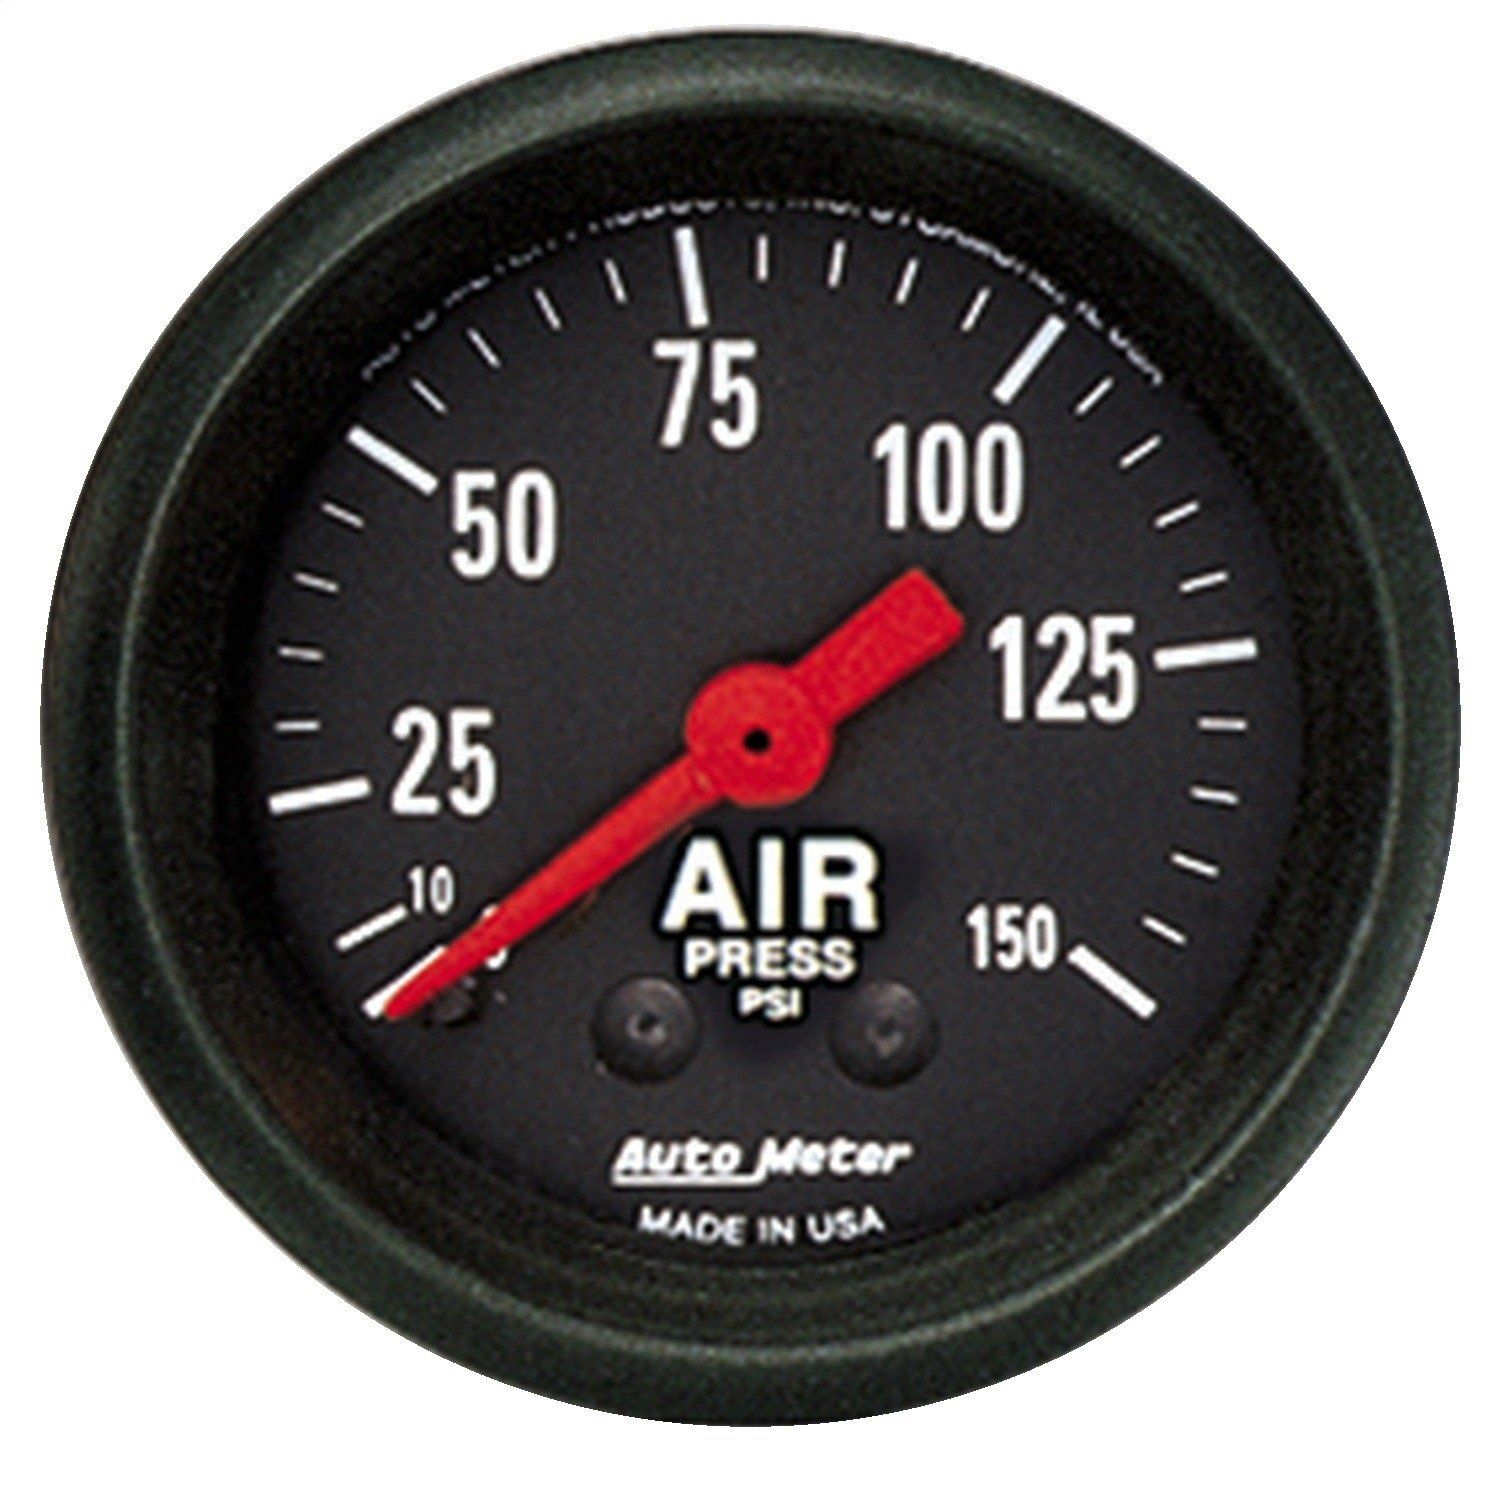 hight resolution of auto meter 2620 zseries mechanical air pressure gauge learn more air pressure gauge wiring diagram